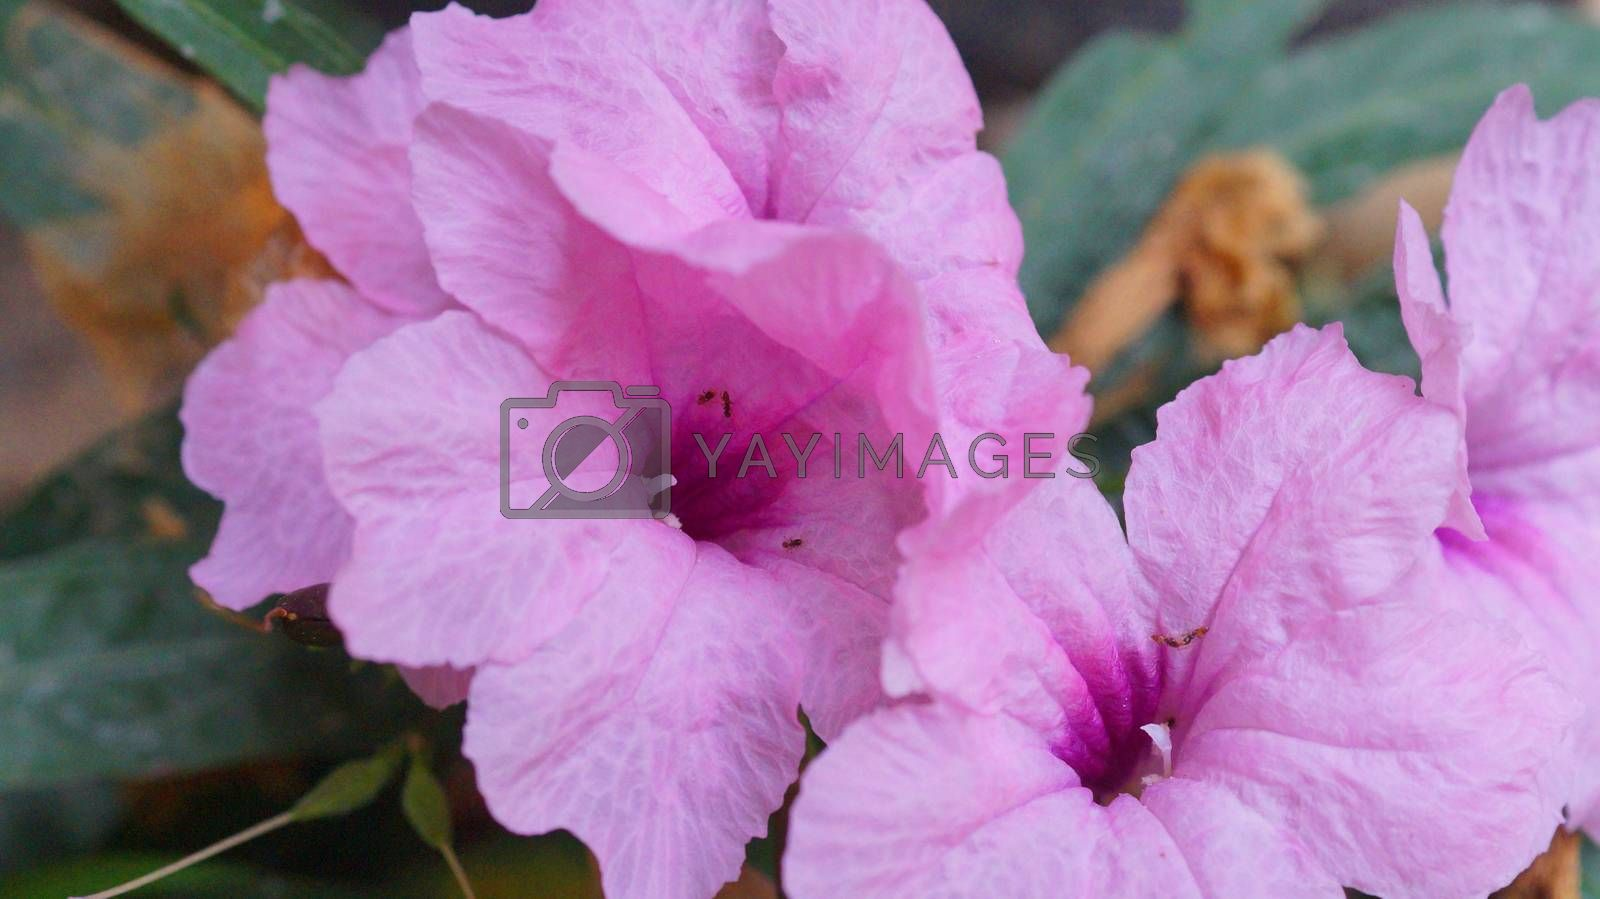 Beautiful Bougainvillea flowers blooming in garden.